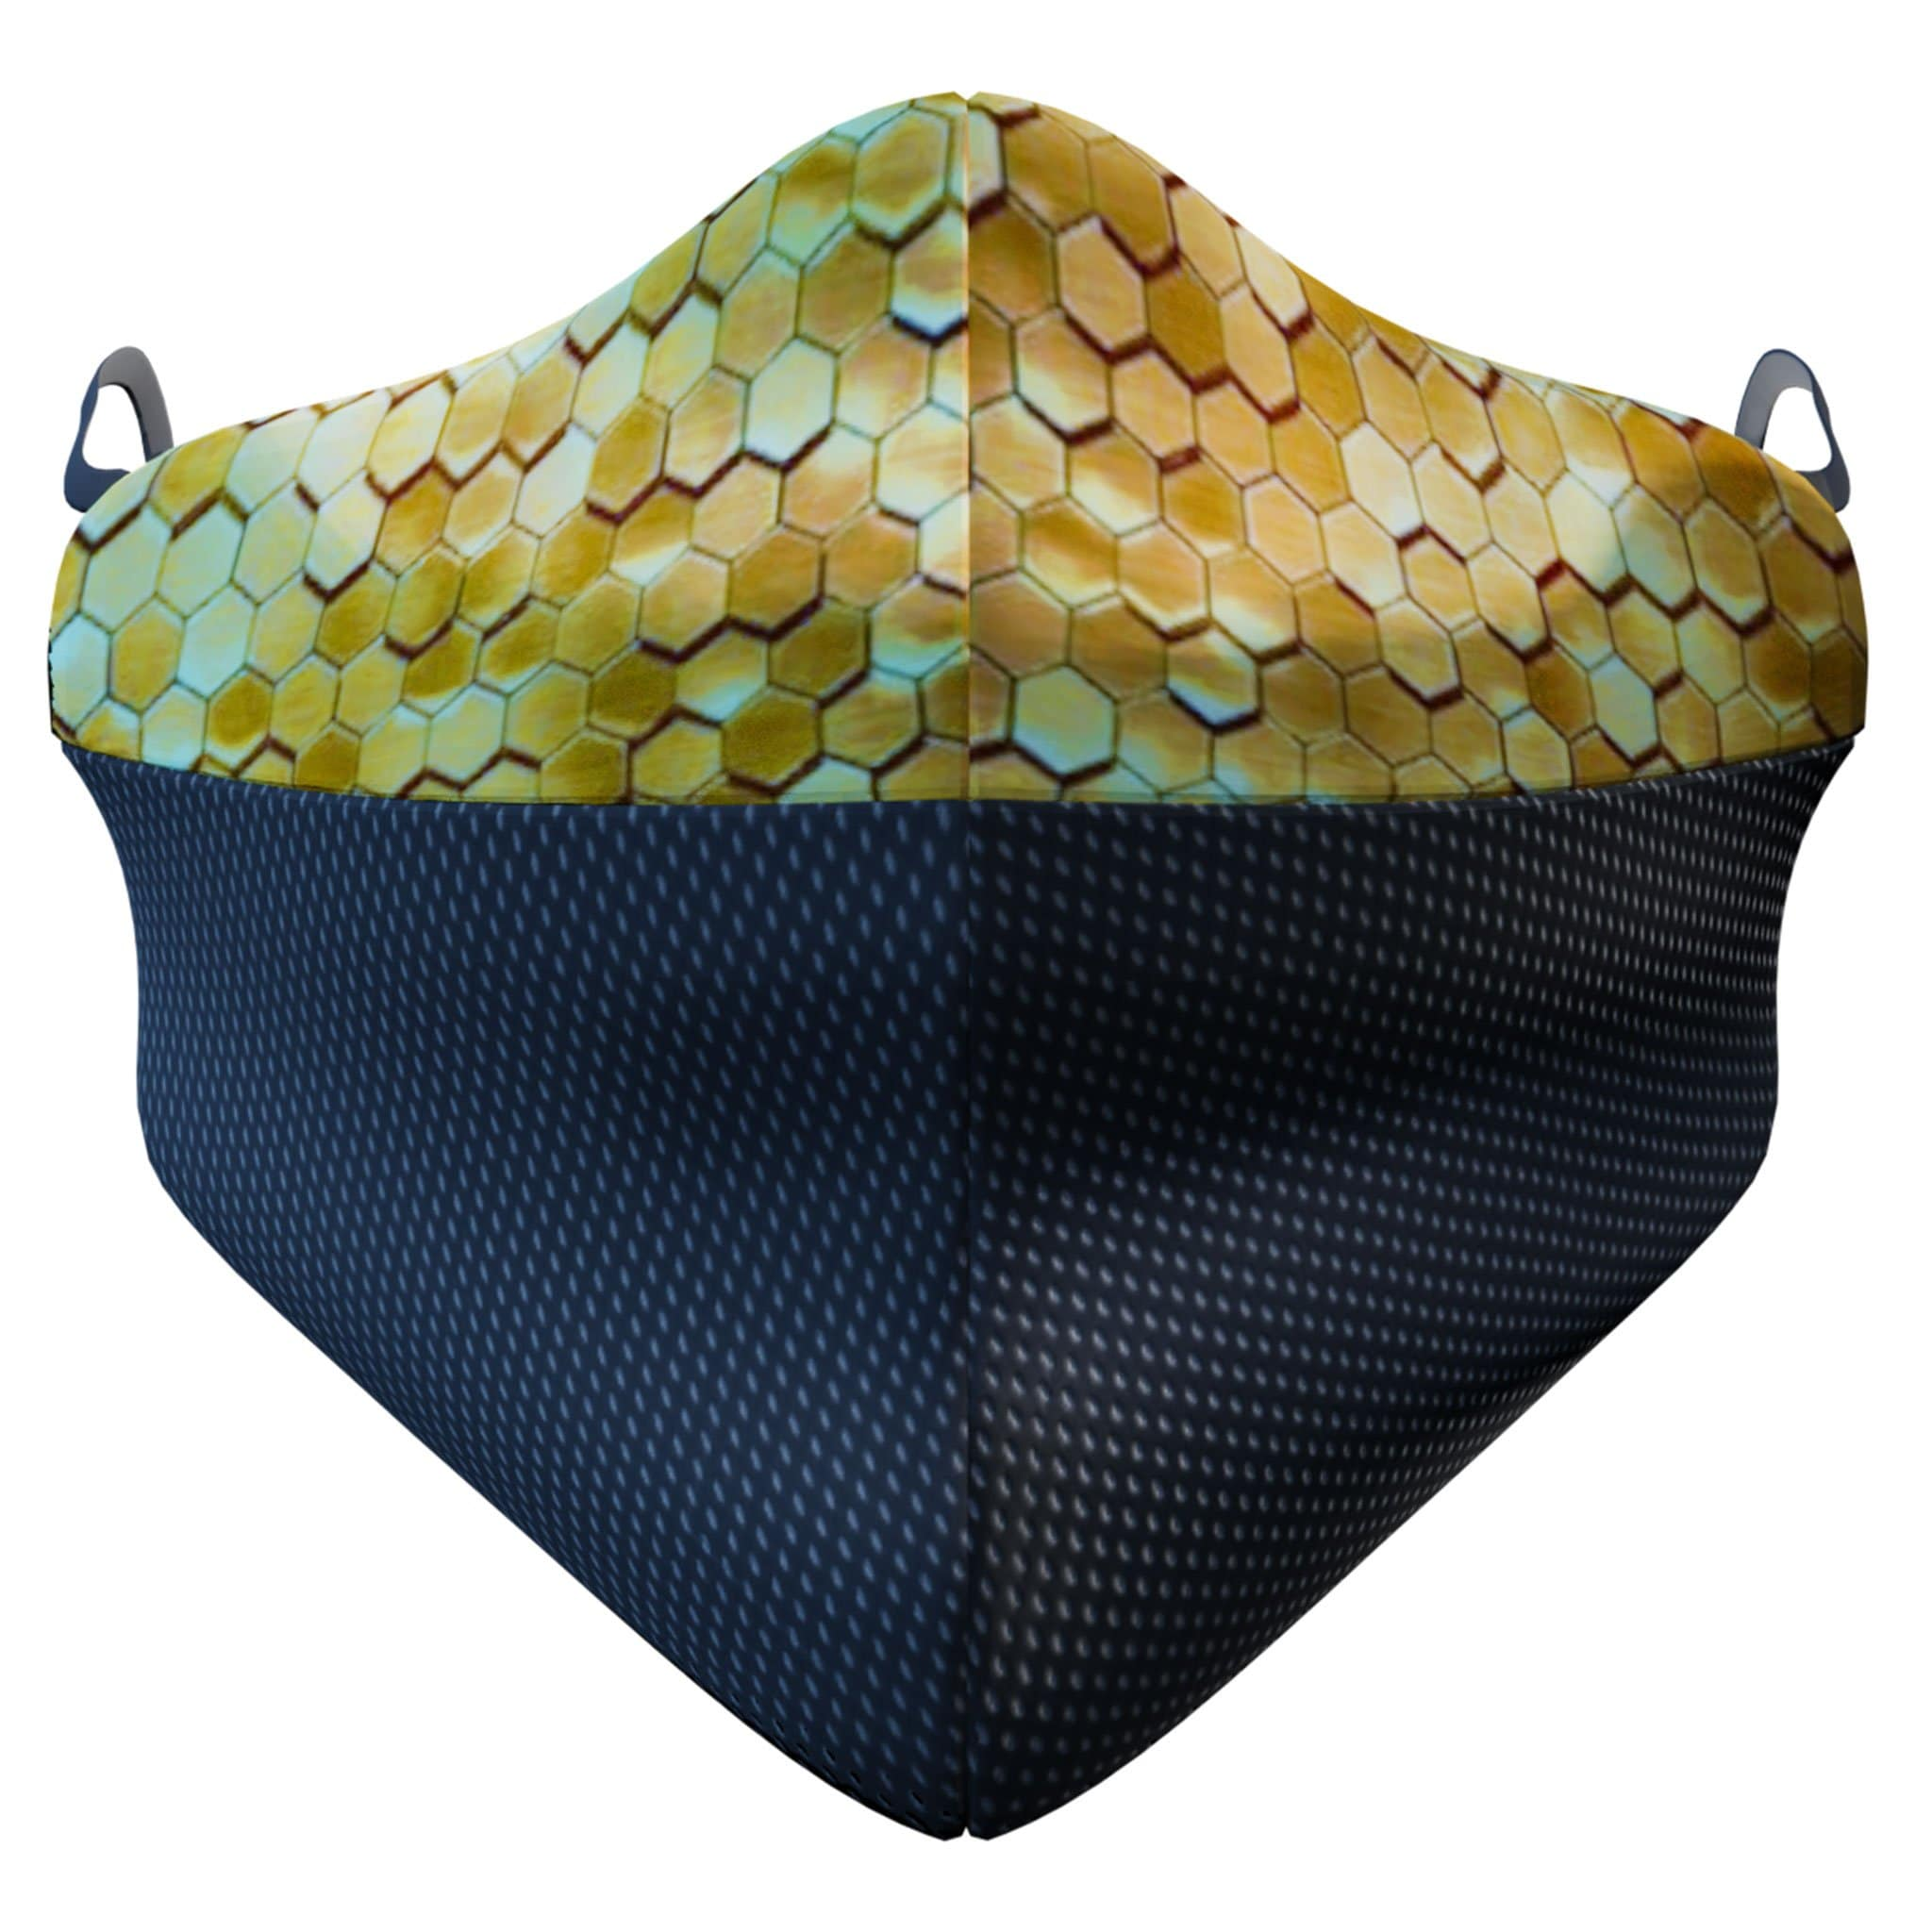 MisfitMask - the facemask that wont steam up your glasses., Protective Masks - Image 29